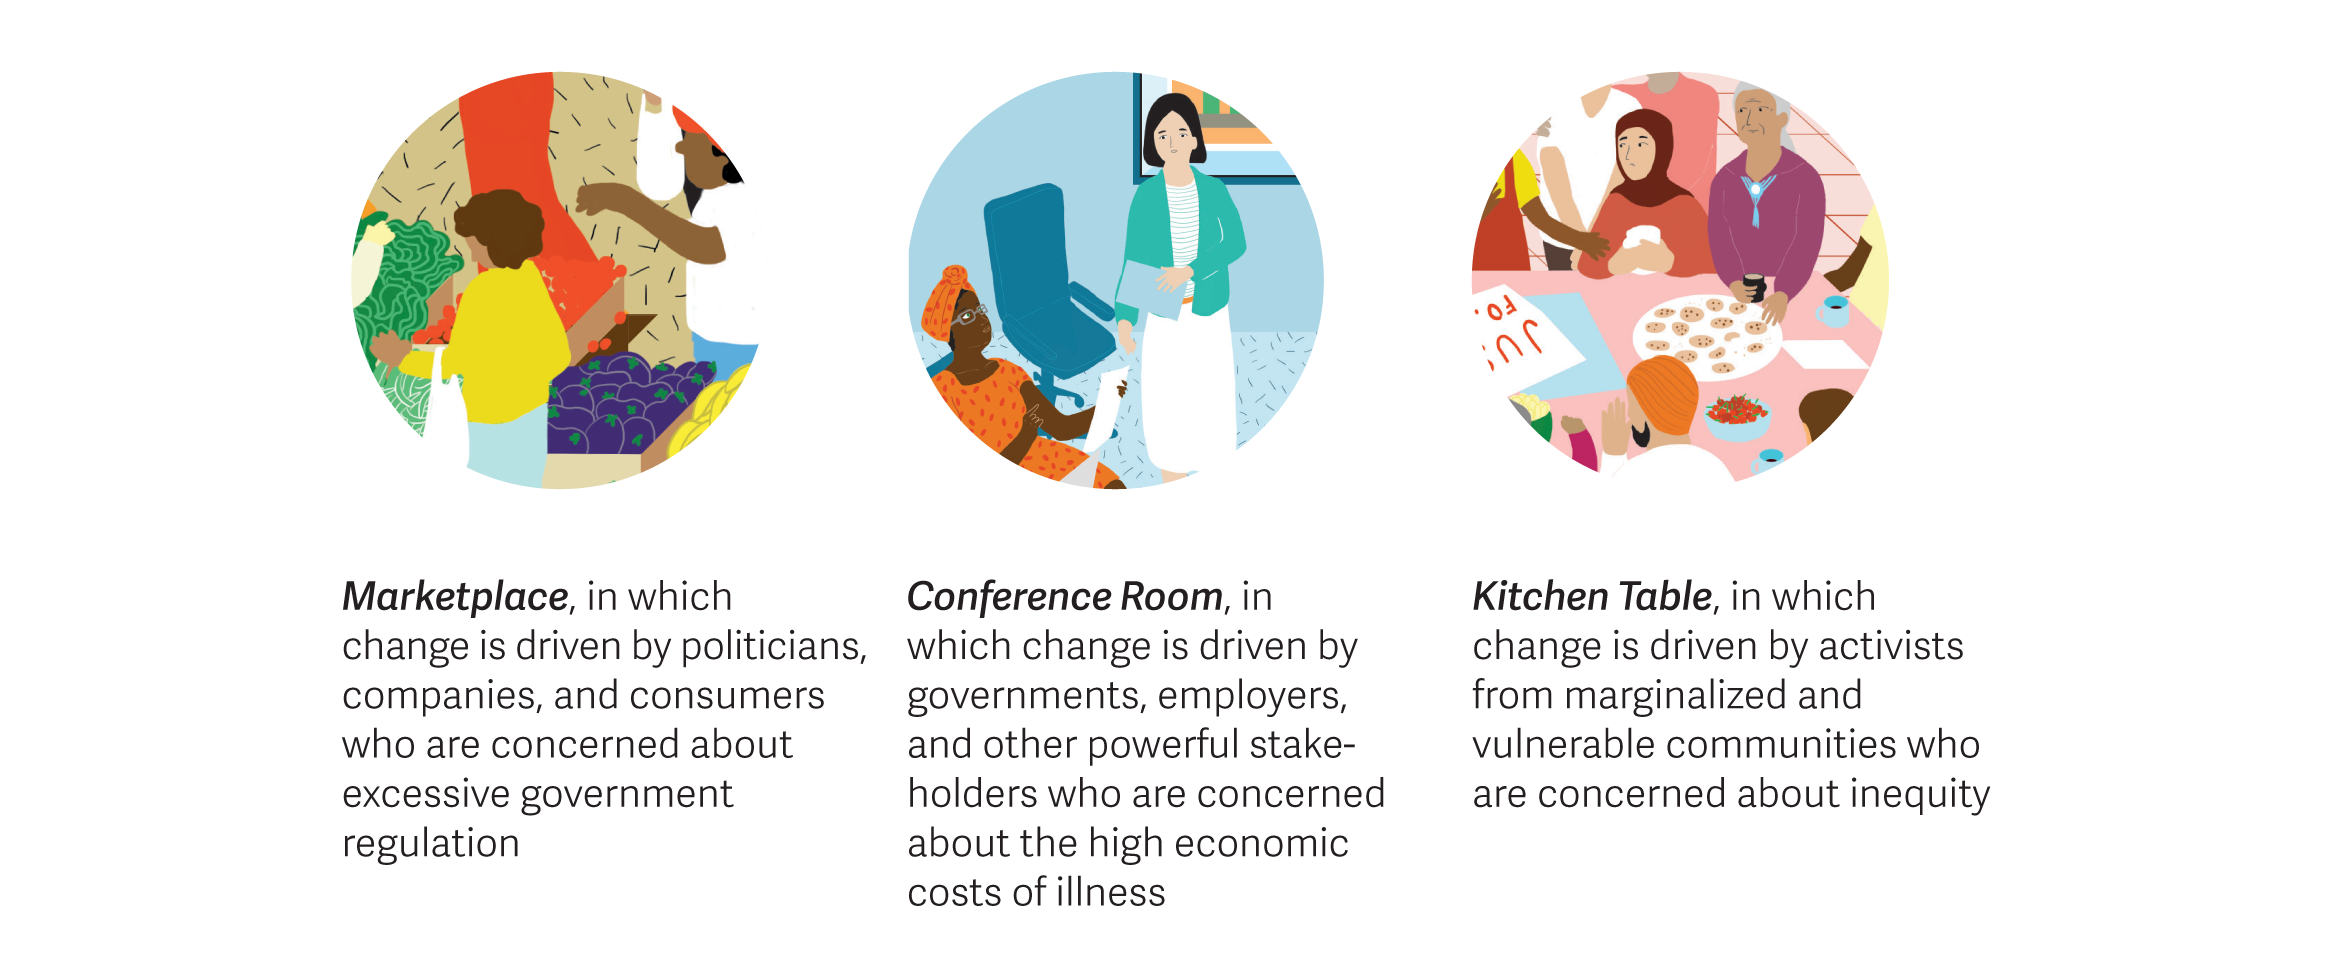 Three illustration icons to represent the health system scenarios for the marketplace, conference room and kitchen table.